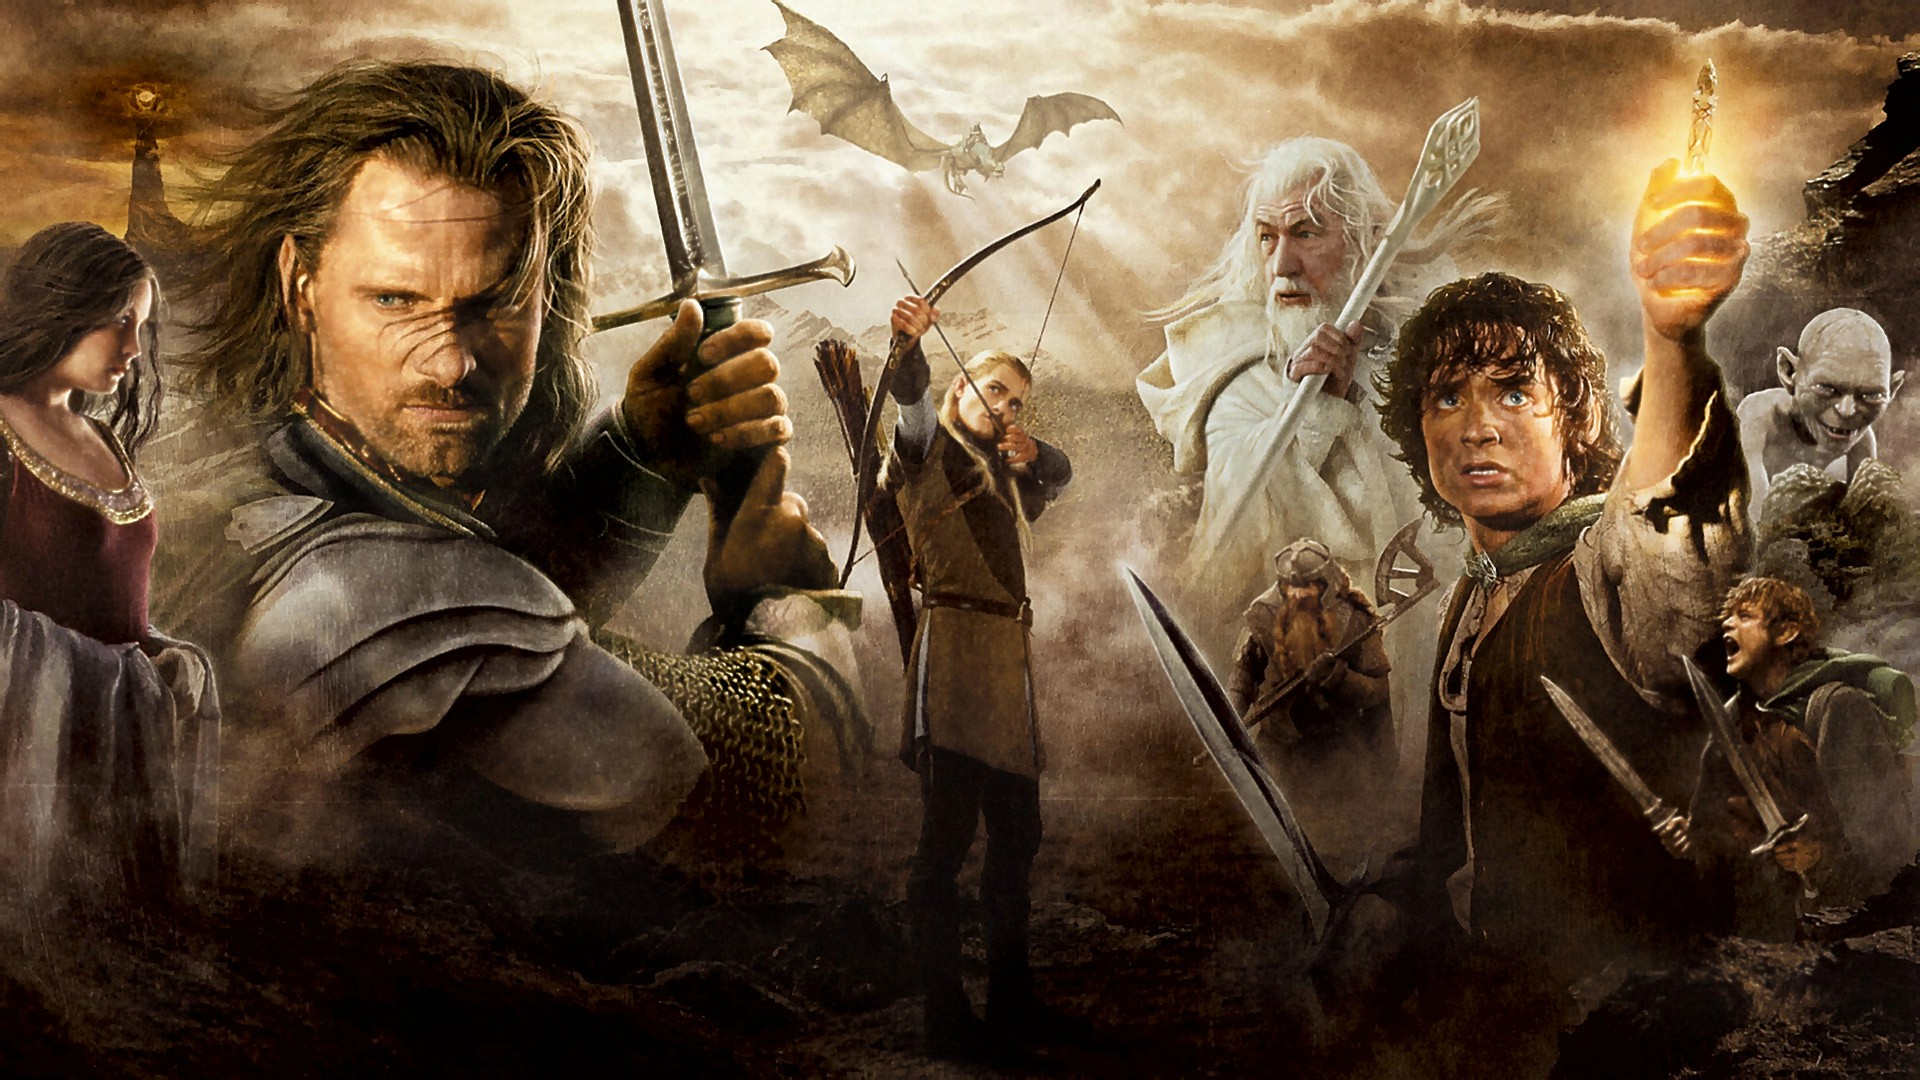 The Lord Of The Rings TV Show May Debut With A 20-Episode Season